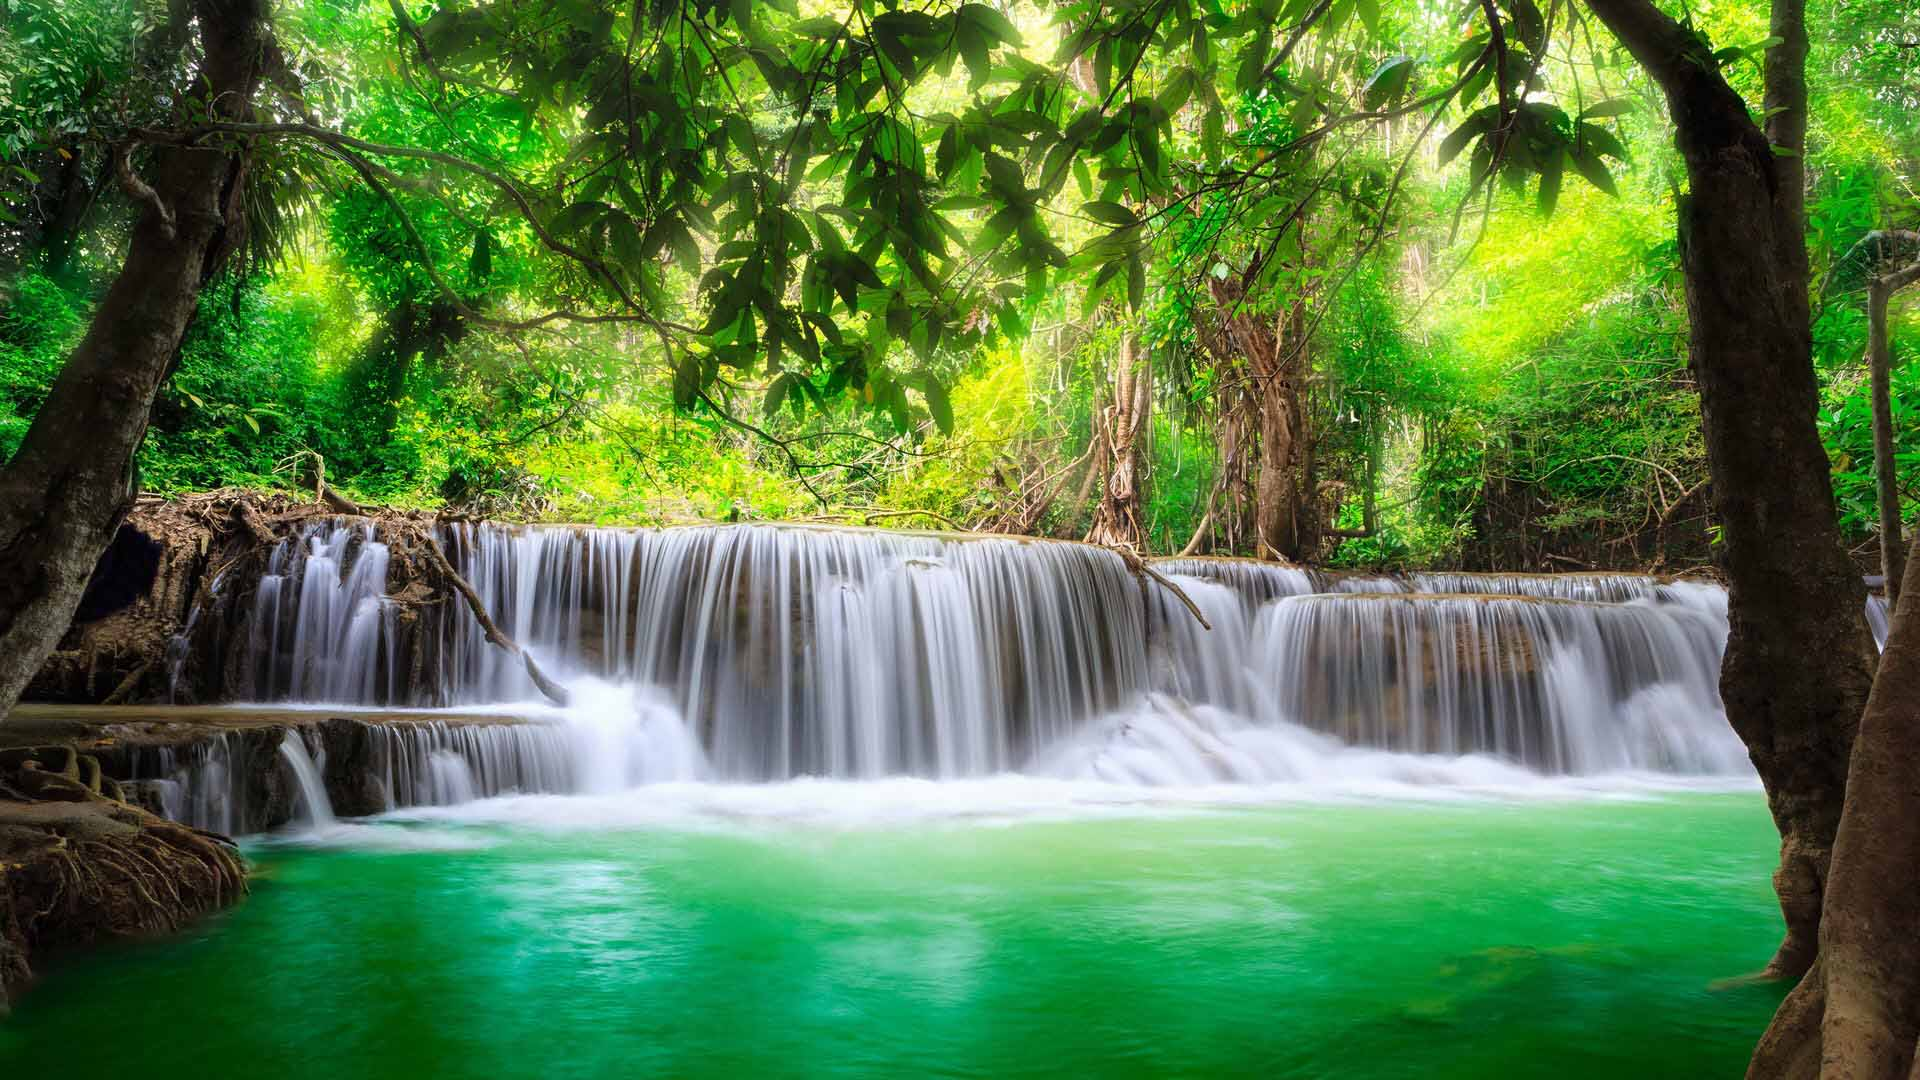 Green Lake Washinton Waterfall Wallpaper Picture Free Download Copy